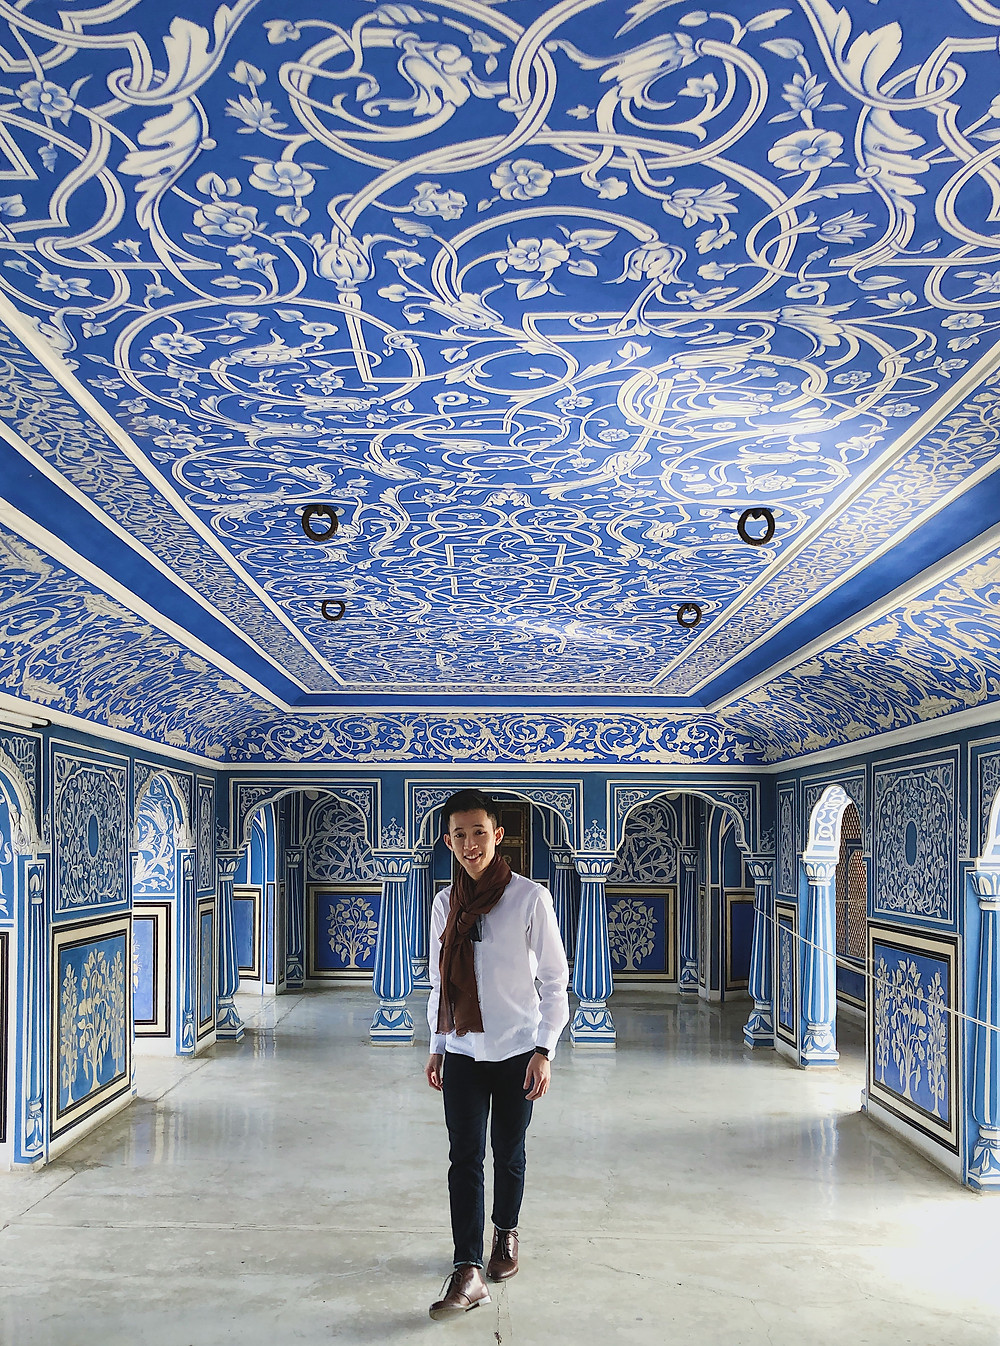 Chhavi Nivas in City Palace of Jaipur, Rajasthan, India